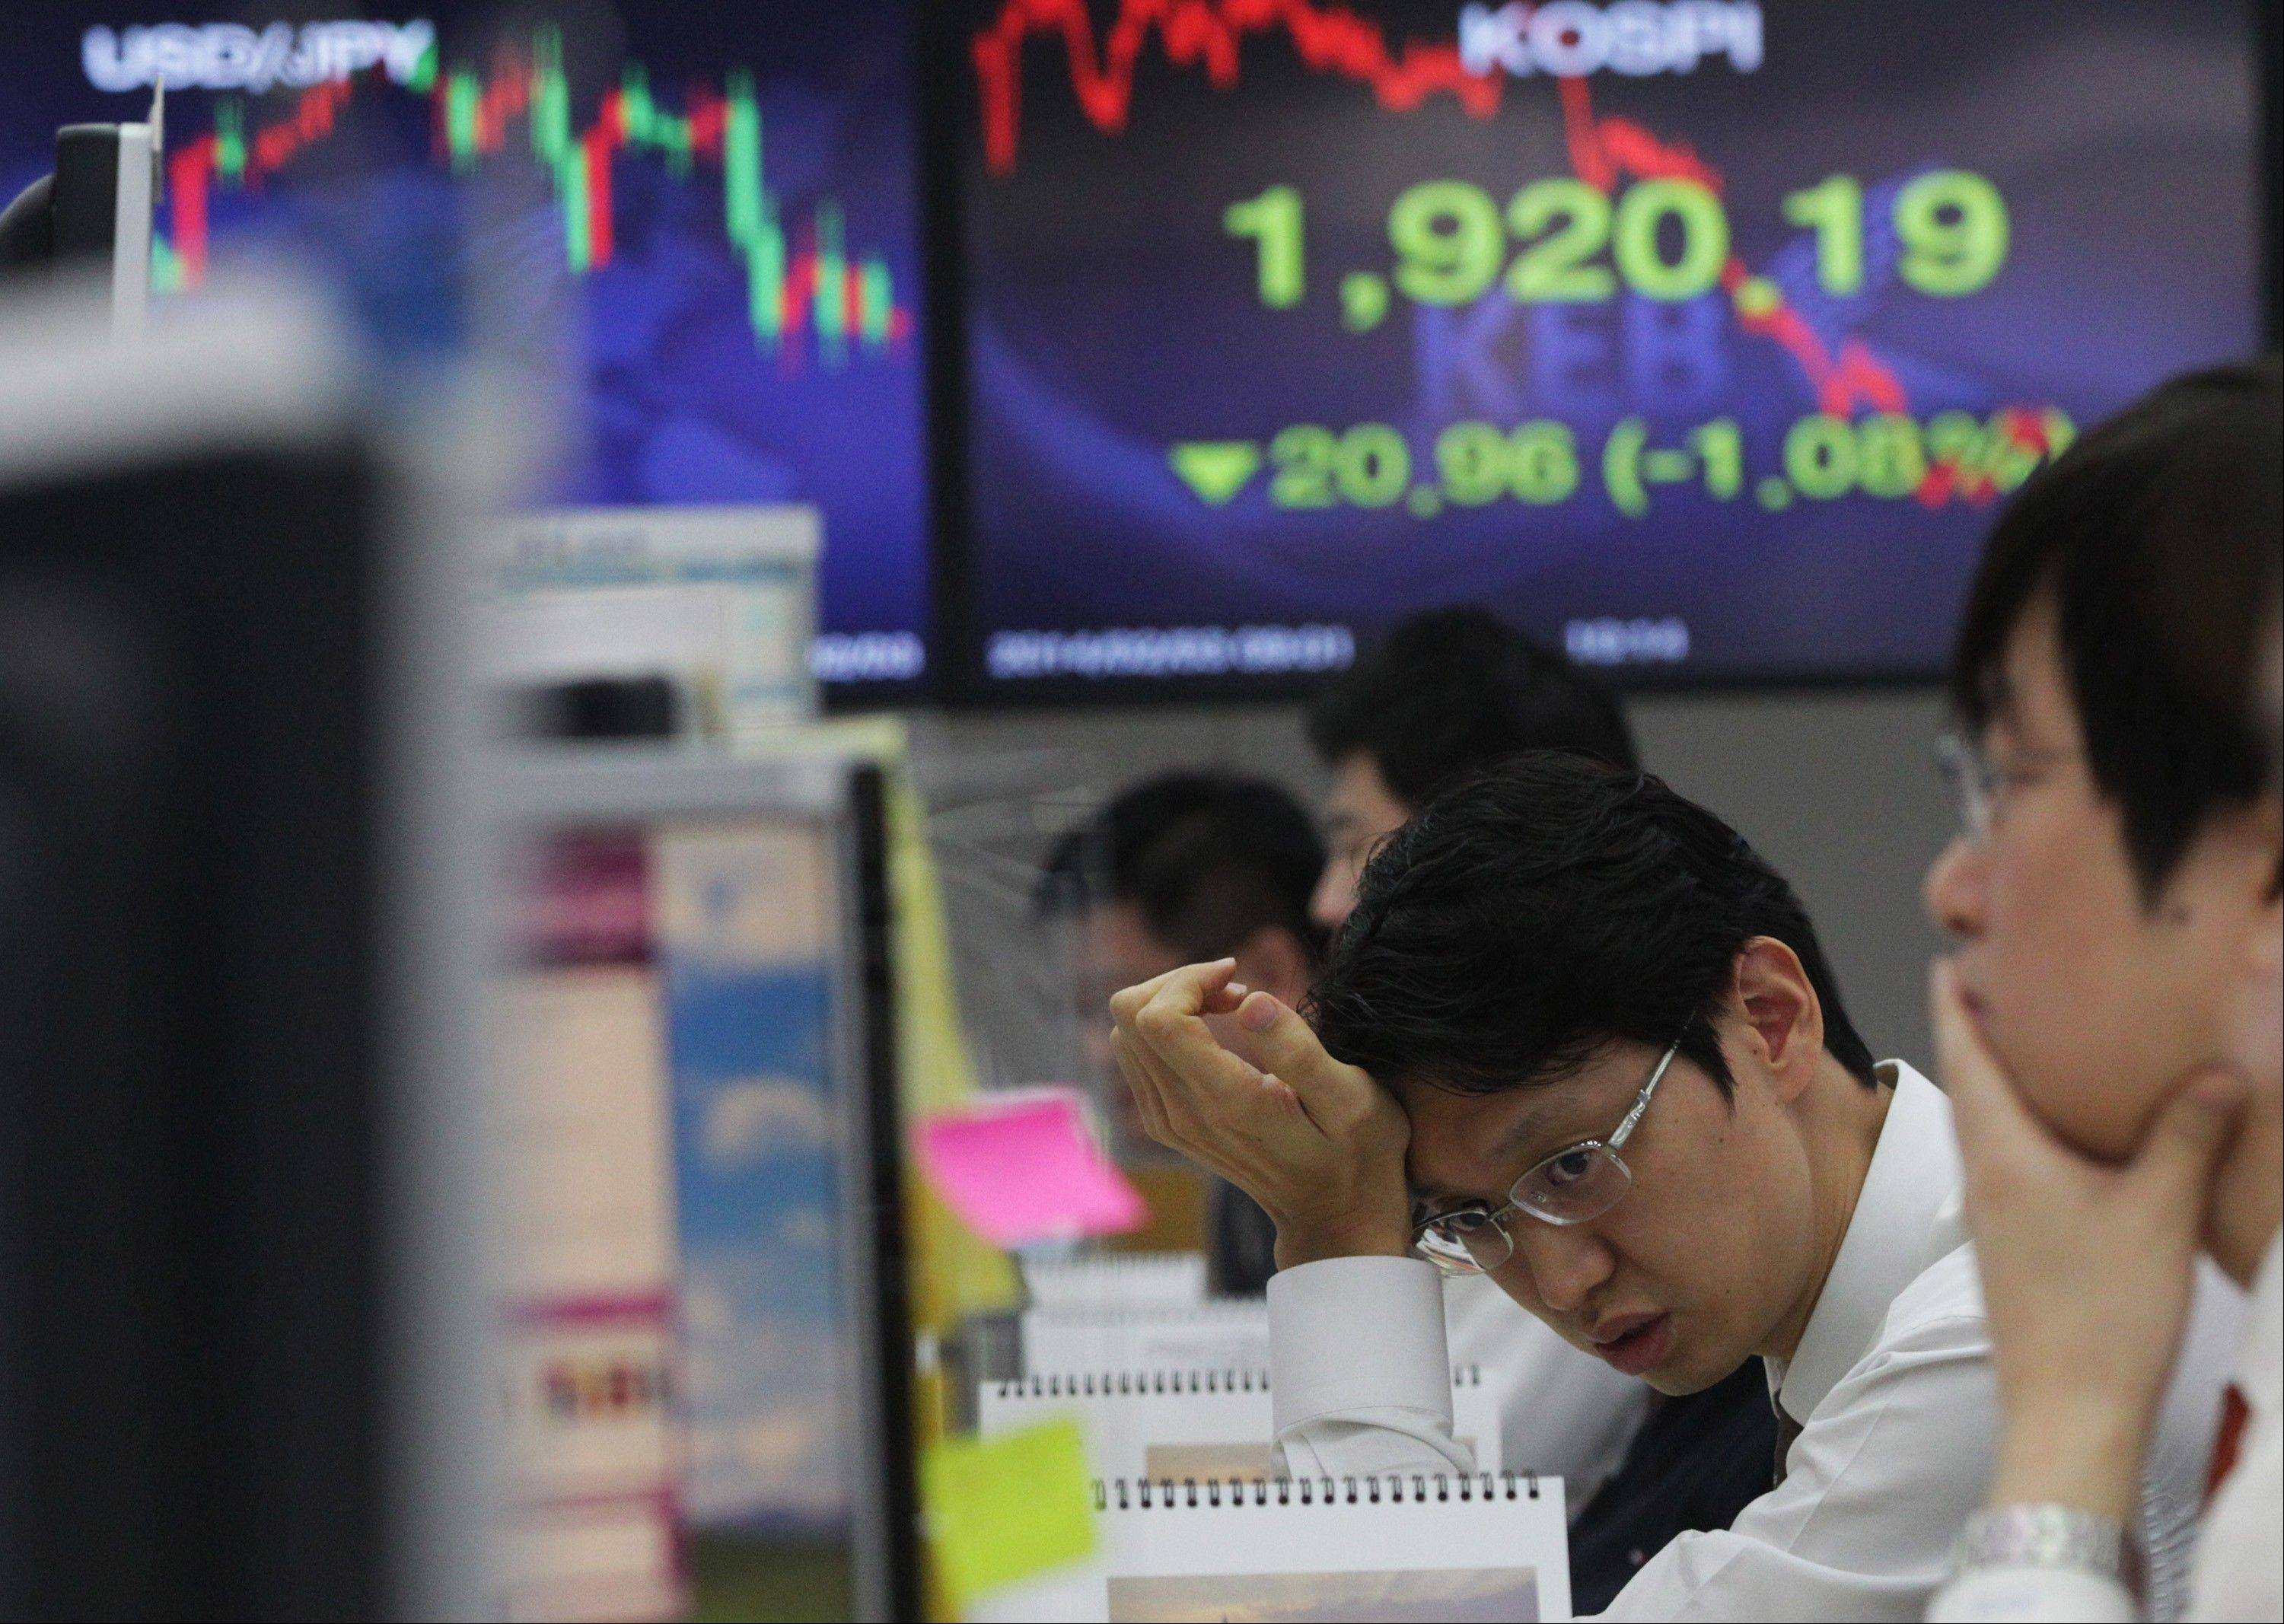 A currency trader works at the Korea Exchange Bank headquarters in Seoul, South Korea. Emerging market worries have helped drive U.S. stocks' disappointing performances so far this year.